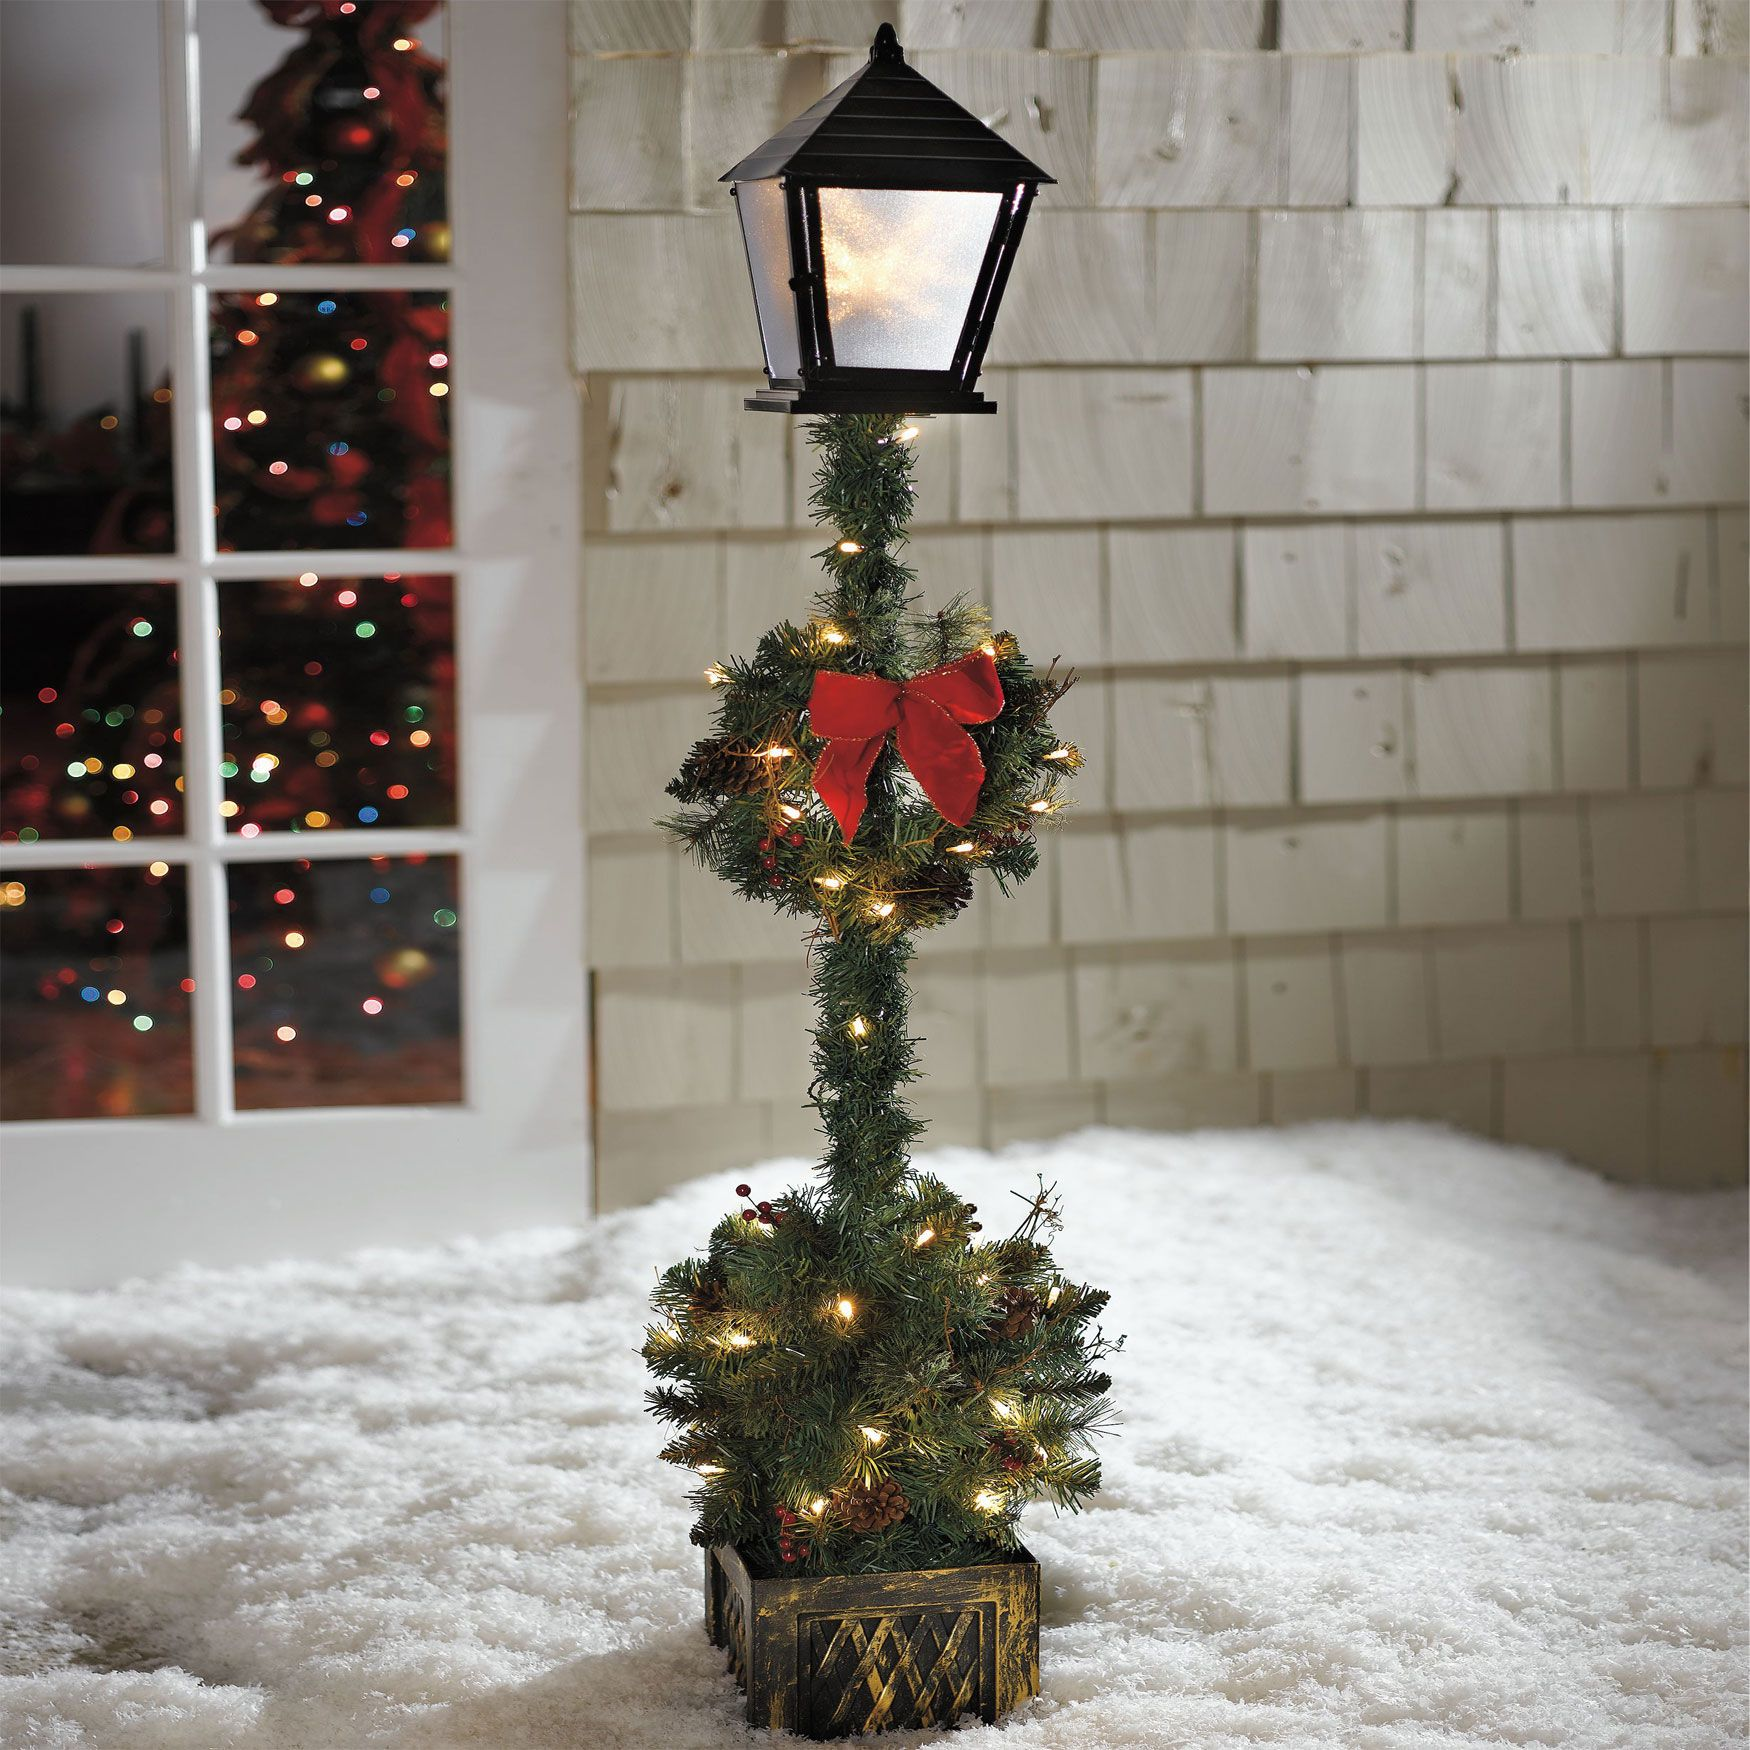 cordless 5 39 lamp post topiary outdoor christmas decor christmas freak pinterest. Black Bedroom Furniture Sets. Home Design Ideas